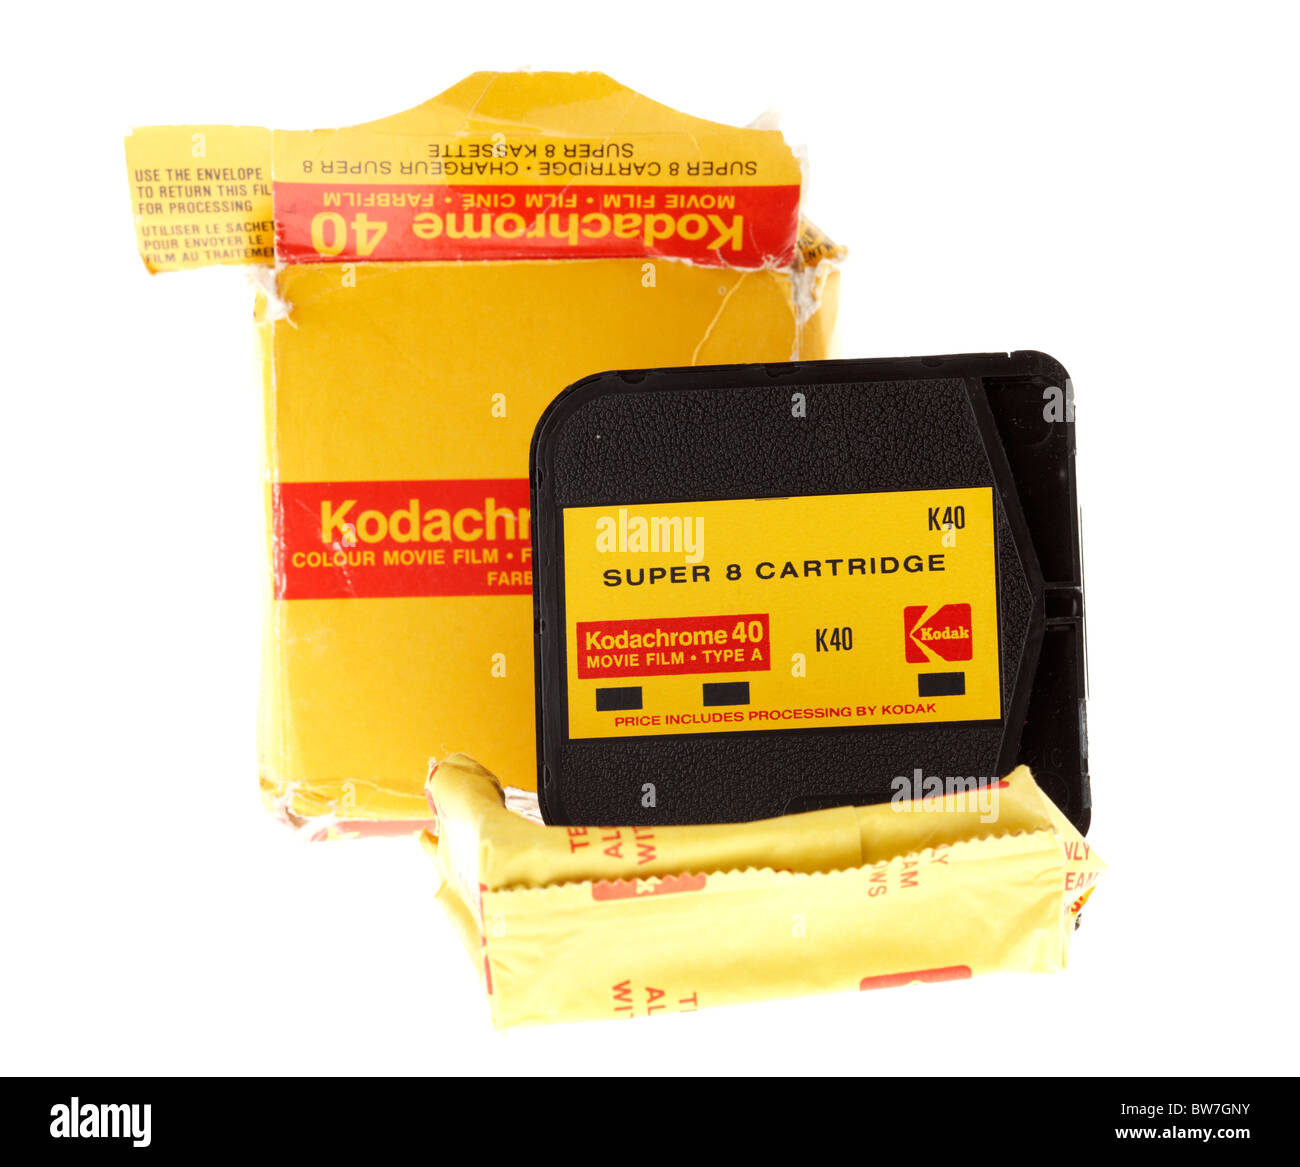 kodak kodachrome super8 cine movie film cartridge - Stock Image